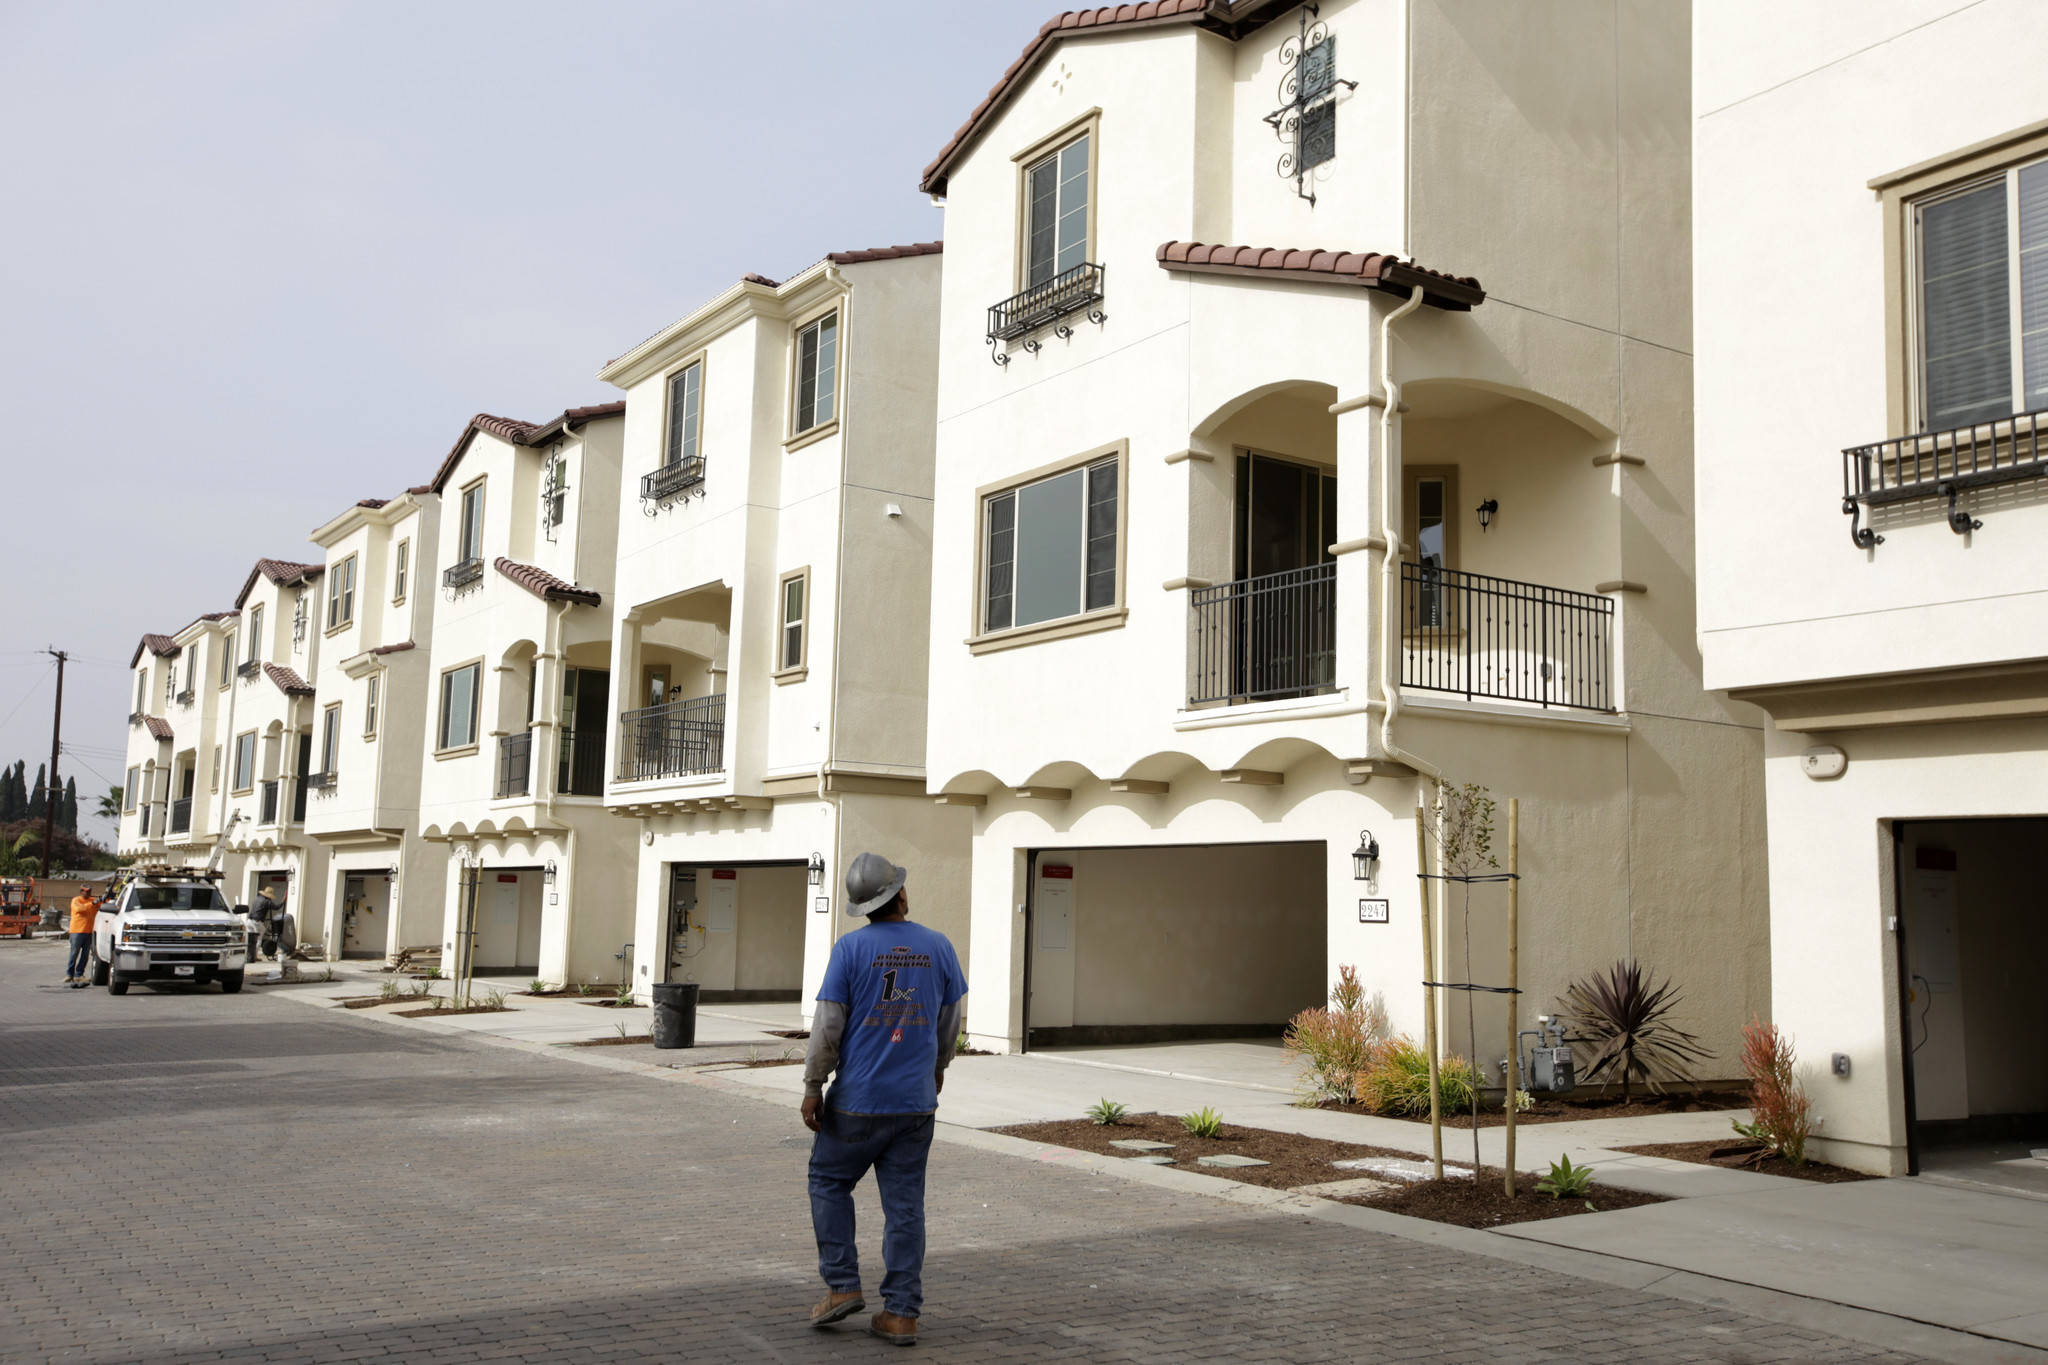 Cost to build a new home in california - One Solution To Southern California S Housing Crisis Building In Tight Spaces Small Lots La Times